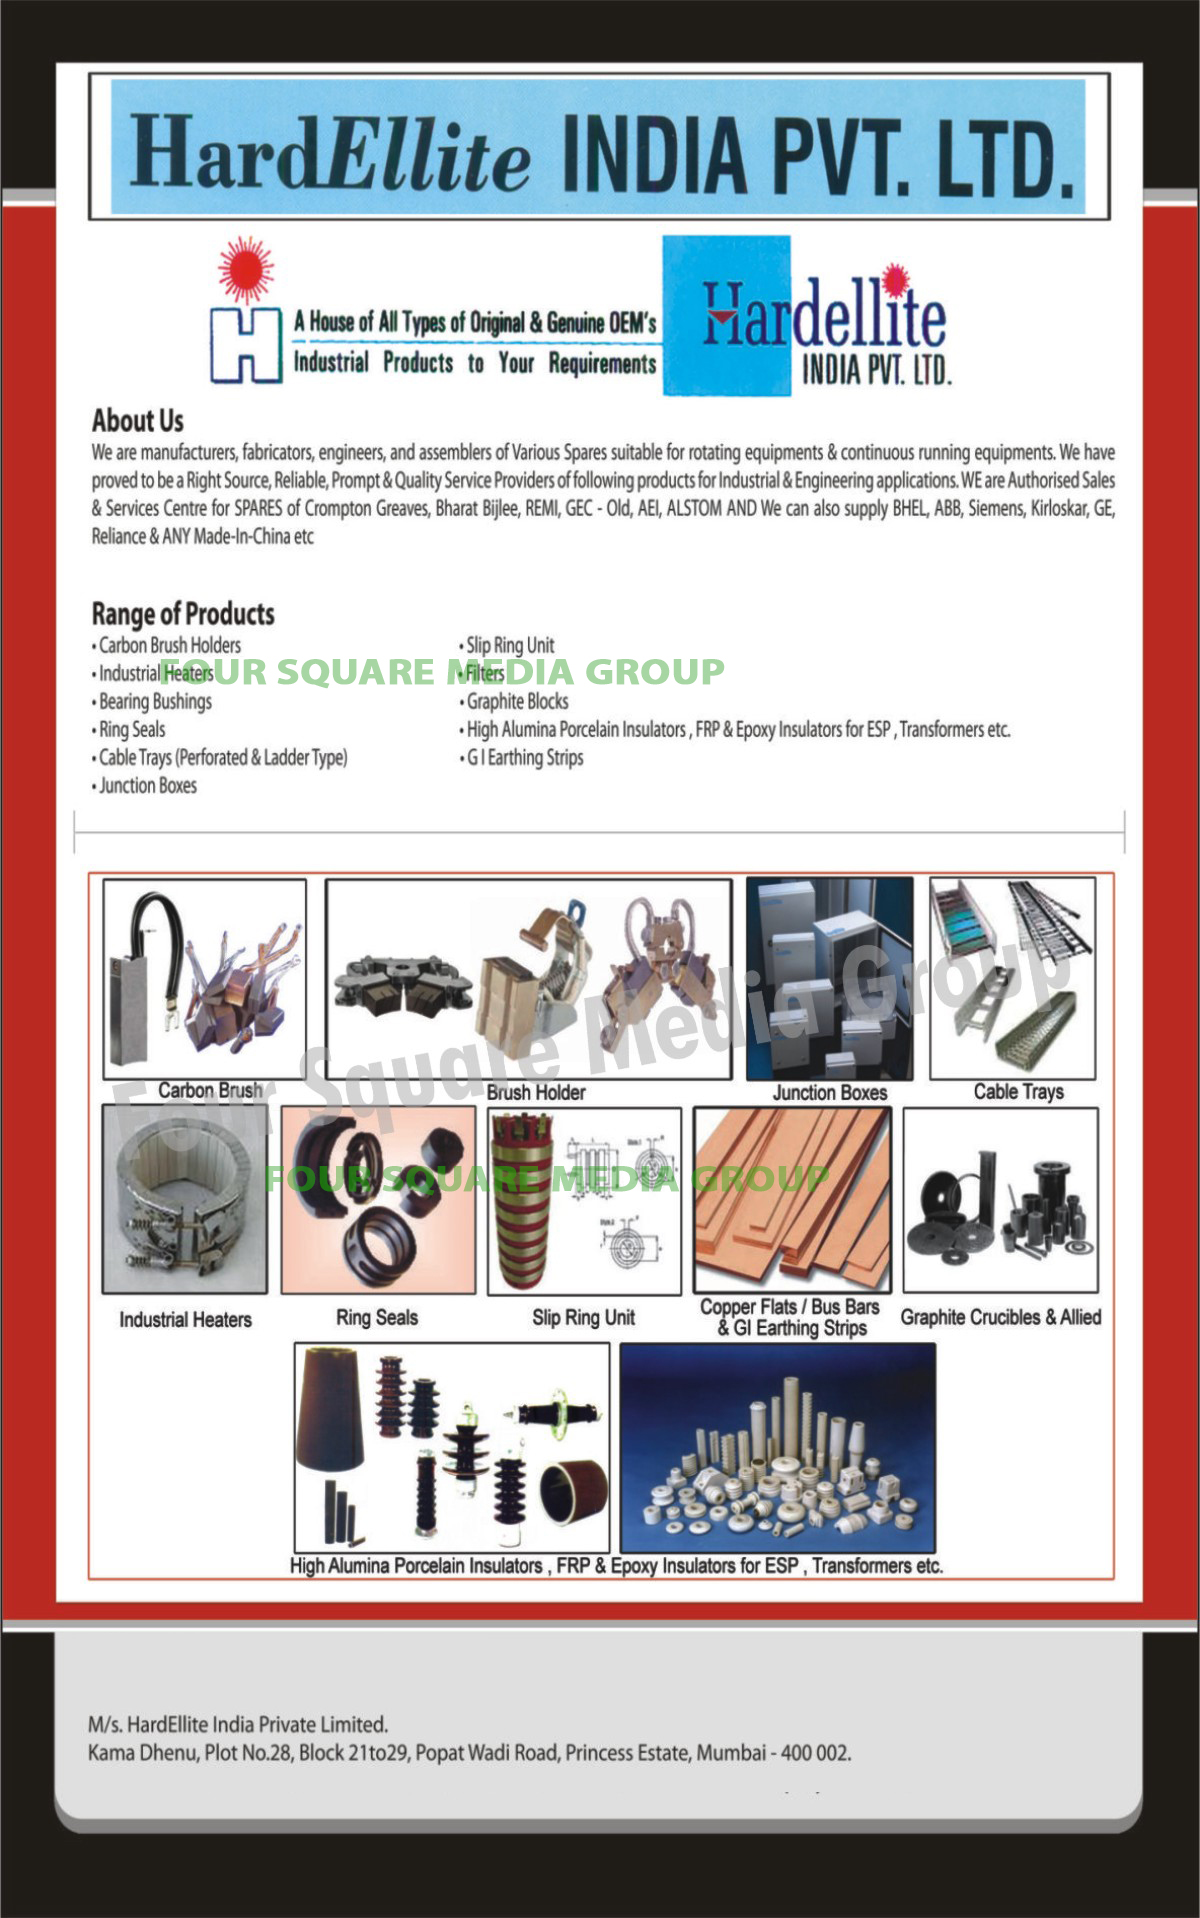 Carbon Brush Holders, Industrial Heaters, Bearing Bushes, Ring Seals, Perforated Type Cable Trays, Ladder Type Cable Trays, Junction Boxes, Slip Ring Units, Filters, Graphite Blocks, High Alumina Porcelain Insulators, FRP Insulator For ESP, Epoxy Insulator For ESP, Transformers, GI Earthing Strips, Copper Flats, Bus Bars, Graphite Crucibles, Graphite Allieds, Cable Trays, Transformer FRP Insulators, Transformer Epoxy Insulators, Rocker Arms, Insulated Rods, Brush Gear Assemblies, ESP Supports, Emitting Rods, Heating Elements, Sheet Metal Boxes, Polycarbonite Boxes, Electric Motors, Impellers, Blowers, FRP Dust Protection Guards, FRP Dust Protection Canopy, LT Cables, HT Cables, Fire Fighting Equipments, LT Capacitors, HT Capacitors, Cable Jointing Kits, Industrial Plugs, Industrial Sockets, Idlers, Rollers, Drums, Buckets, Pulleys, Shafts, Flanges, Pipe Fittings, Flat Bus Bars, Fire Safety Products